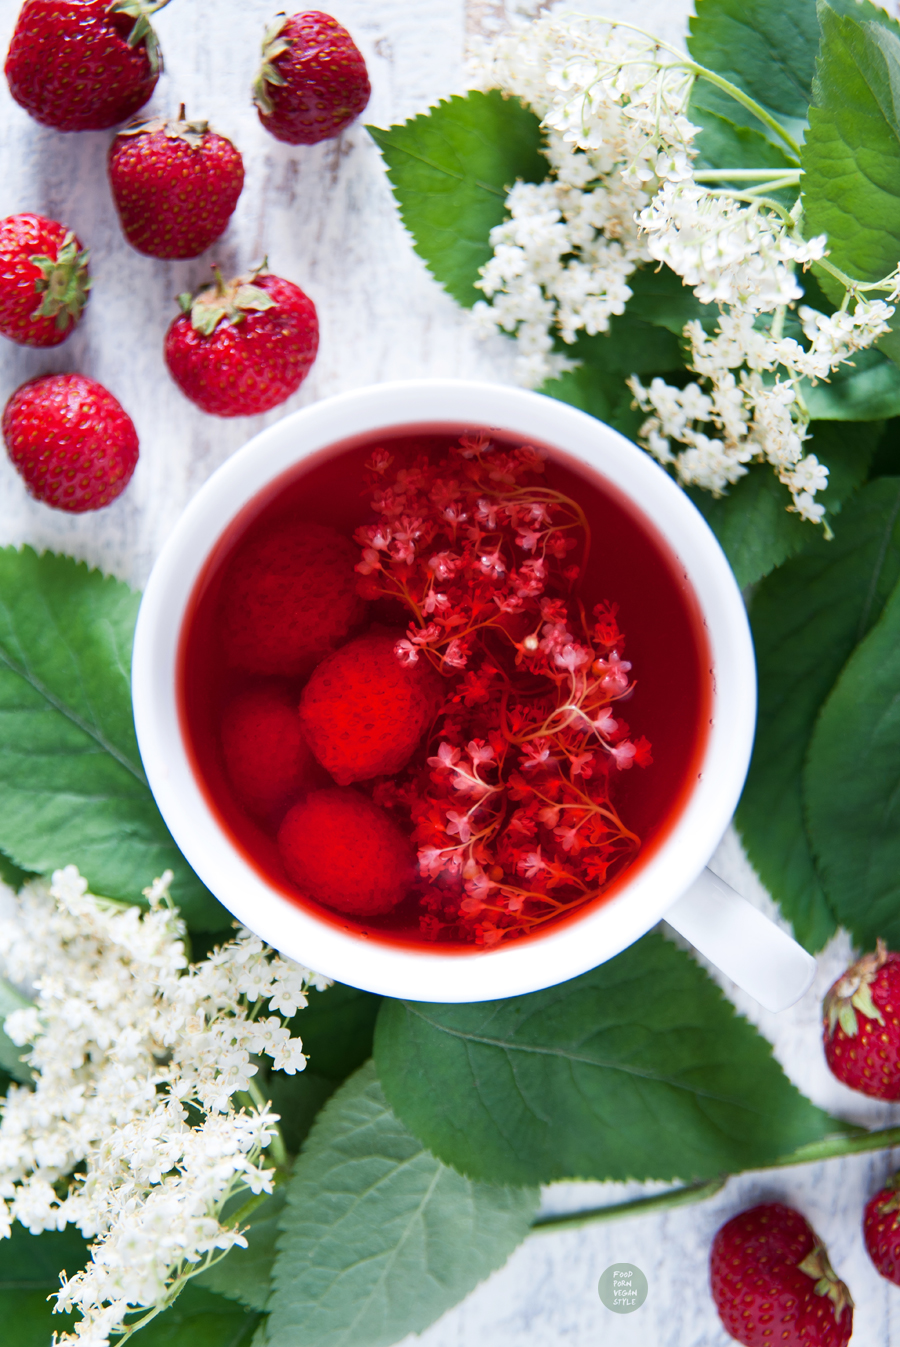 Strawberry-elderflower lemonade